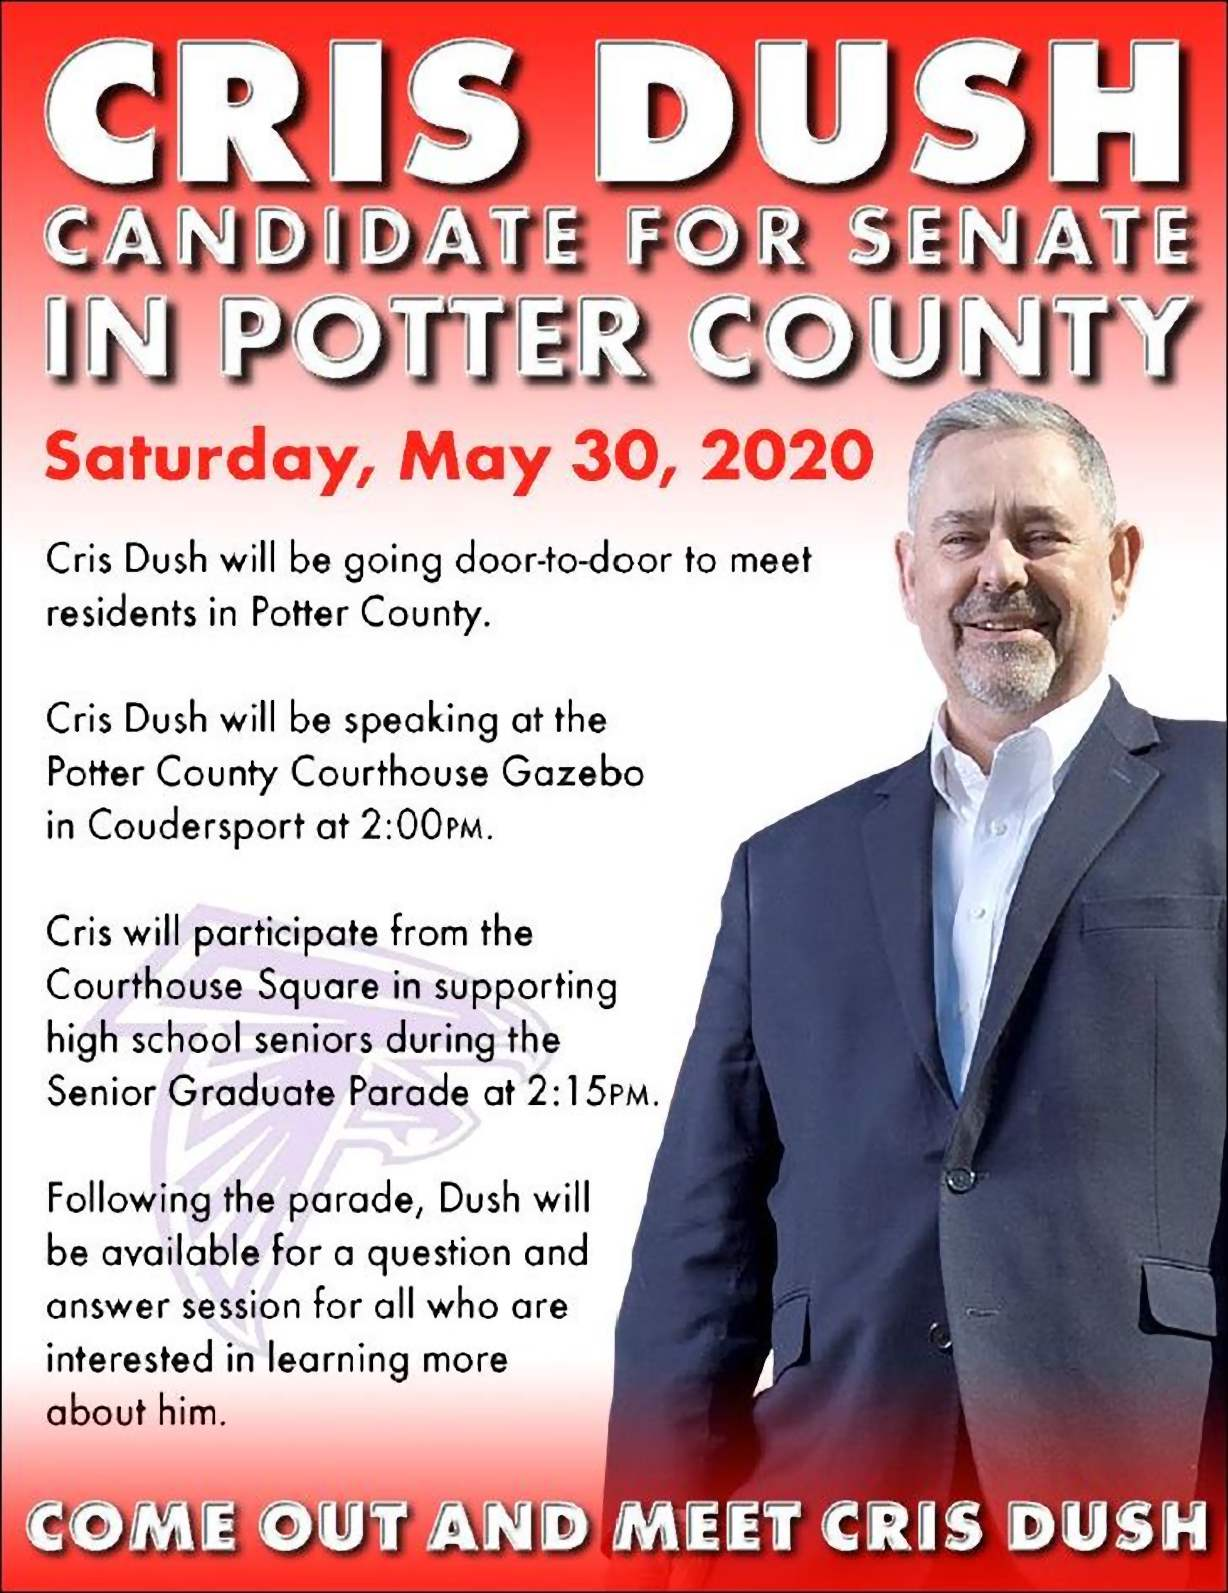 Meet Republican Cris Dush Saturday in Potter County